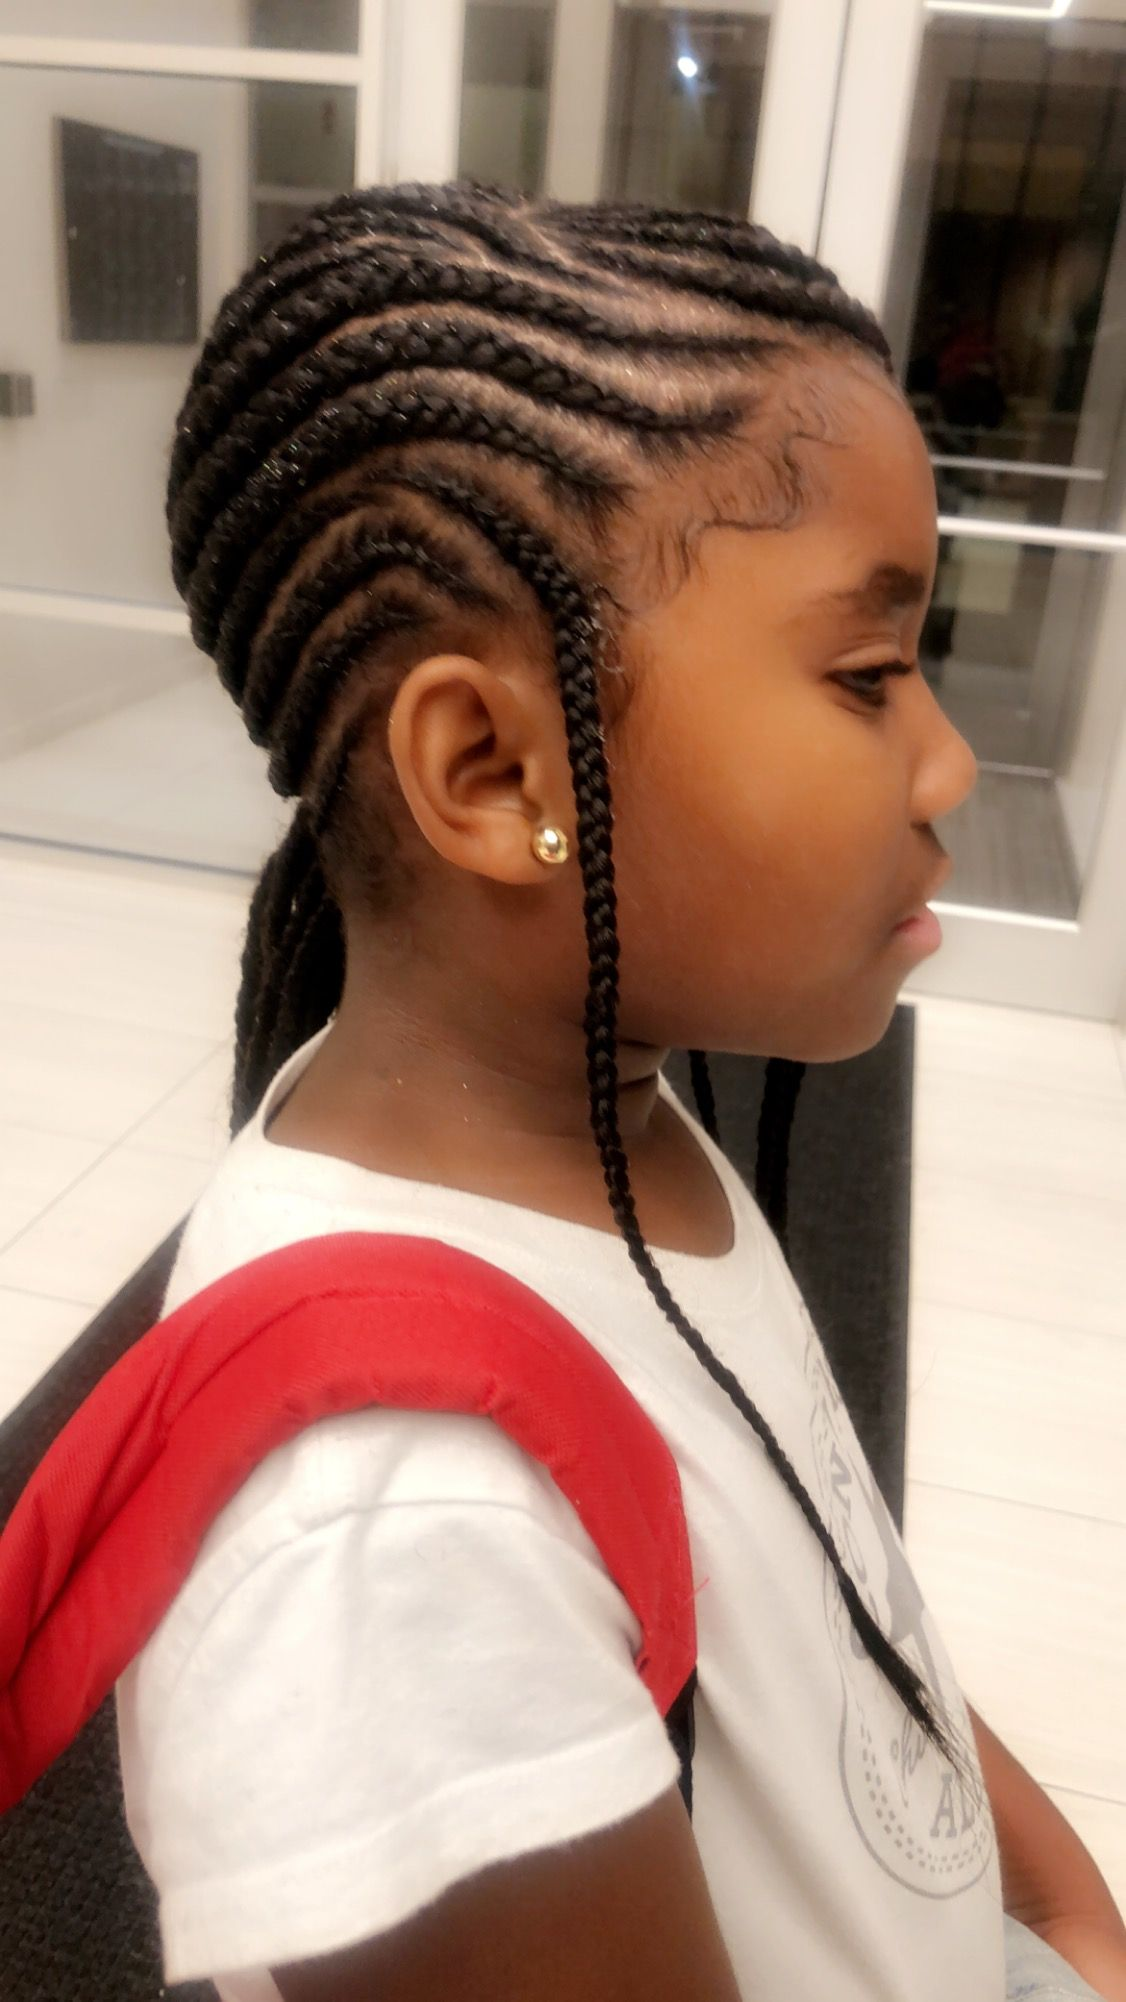 Pin By Labelladeena On Princess Divas Hairstyles Hair Styles Hair Diva